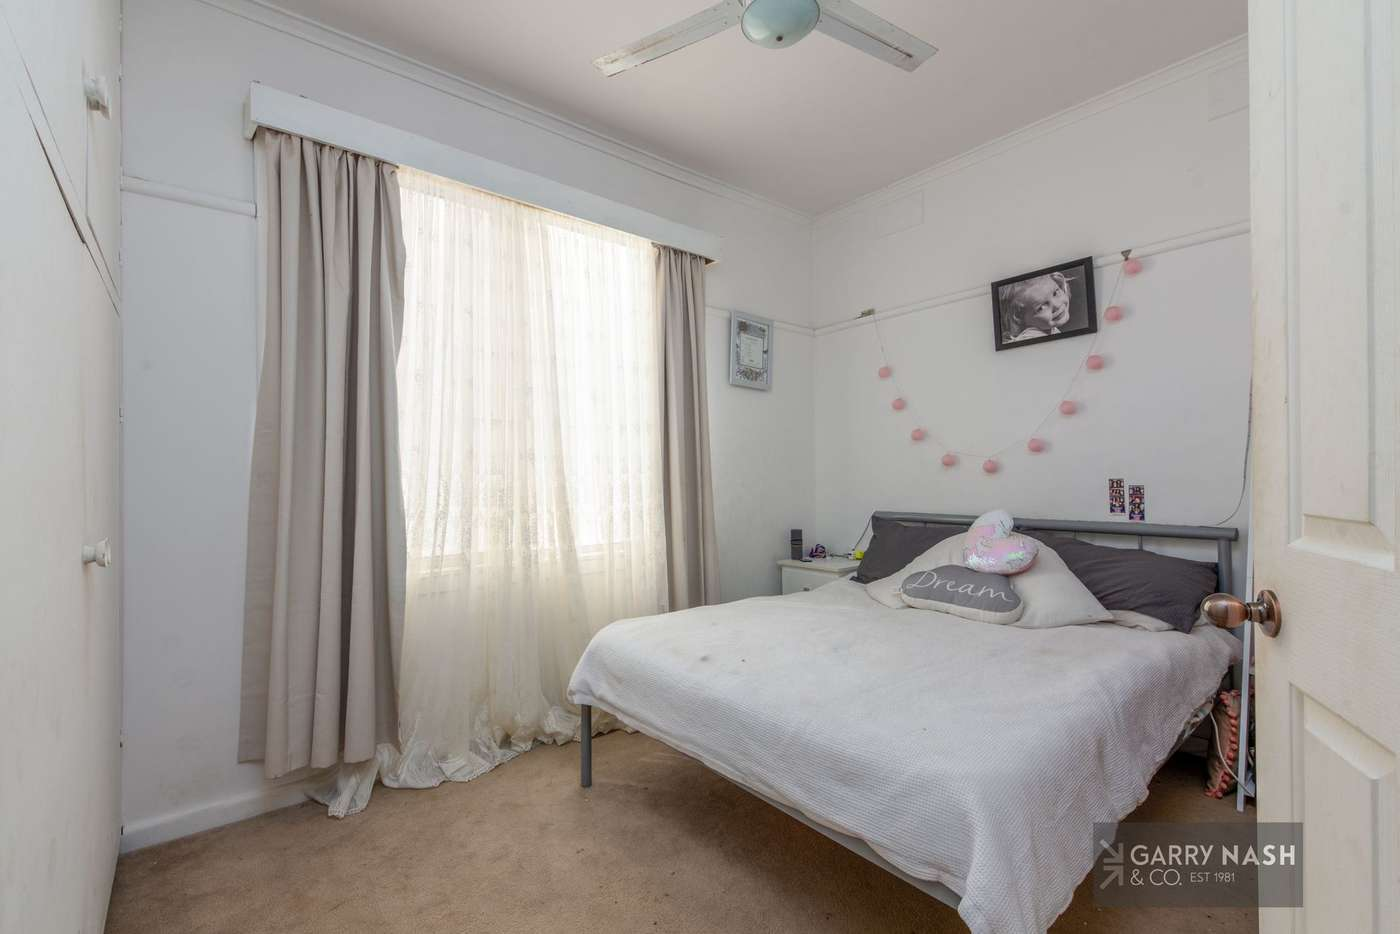 Seventh view of Homely house listing, 24 Batchelor Crescent, Wangaratta VIC 3677